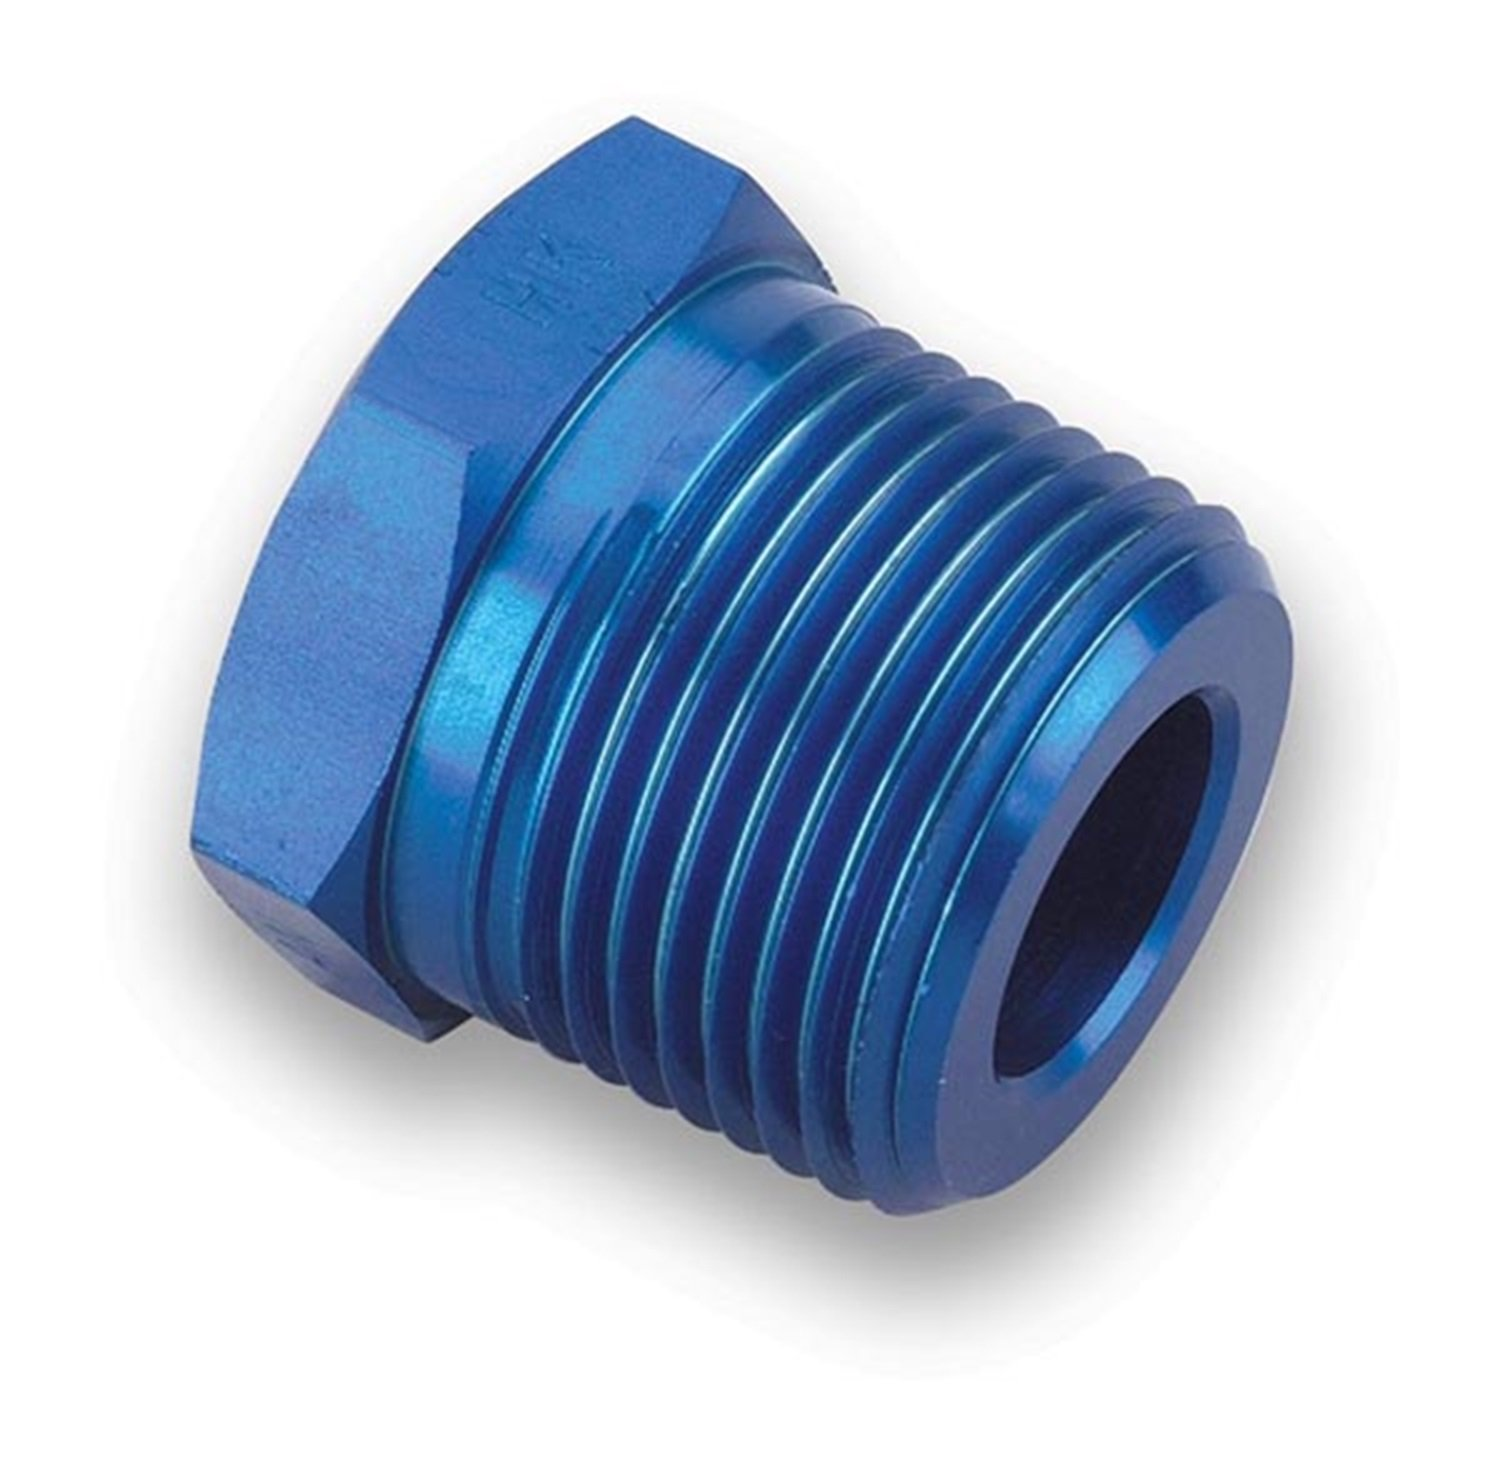 Earl's 991203 Blue Anodized Aluminum 1/8'' NPT Female to 3/8'' NPT Male Pipe Bushing Reducer by Earl's Performance